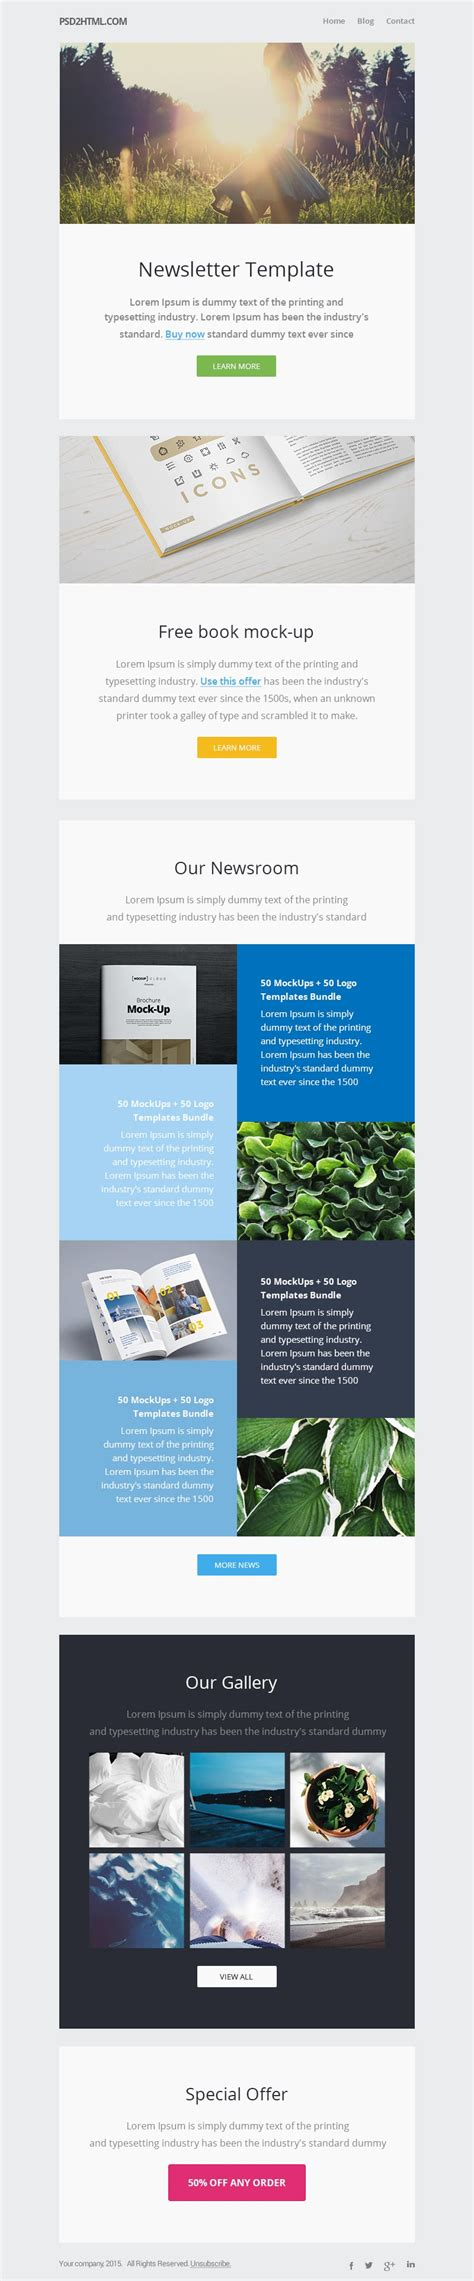 Free Email Newsletter Templates Psd 187 Css Author Email Newsletter Templates